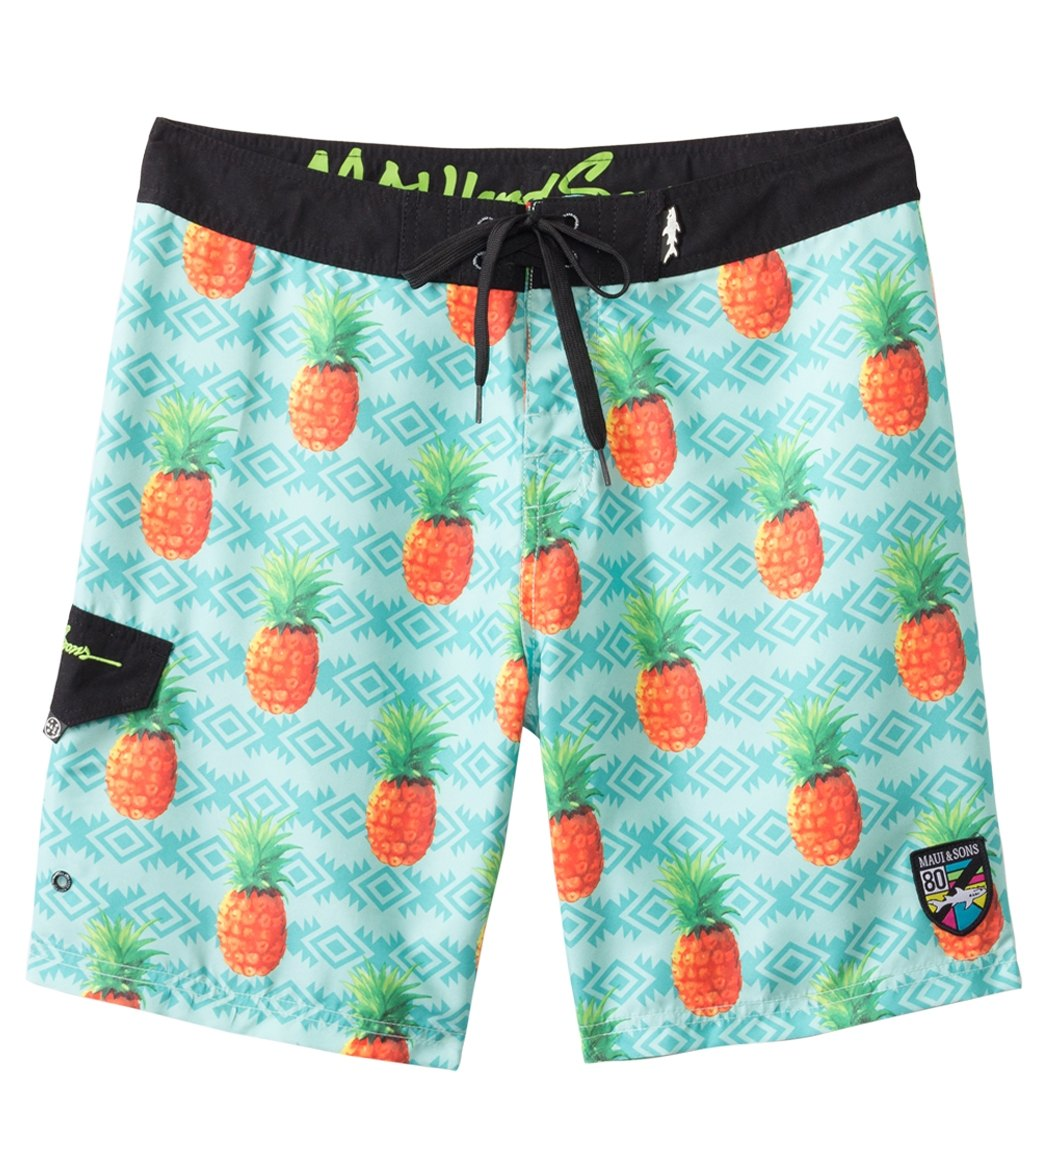 24ddb16fc5 Maui and Sons Men's Local's Only Boardshort at SwimOutlet.com